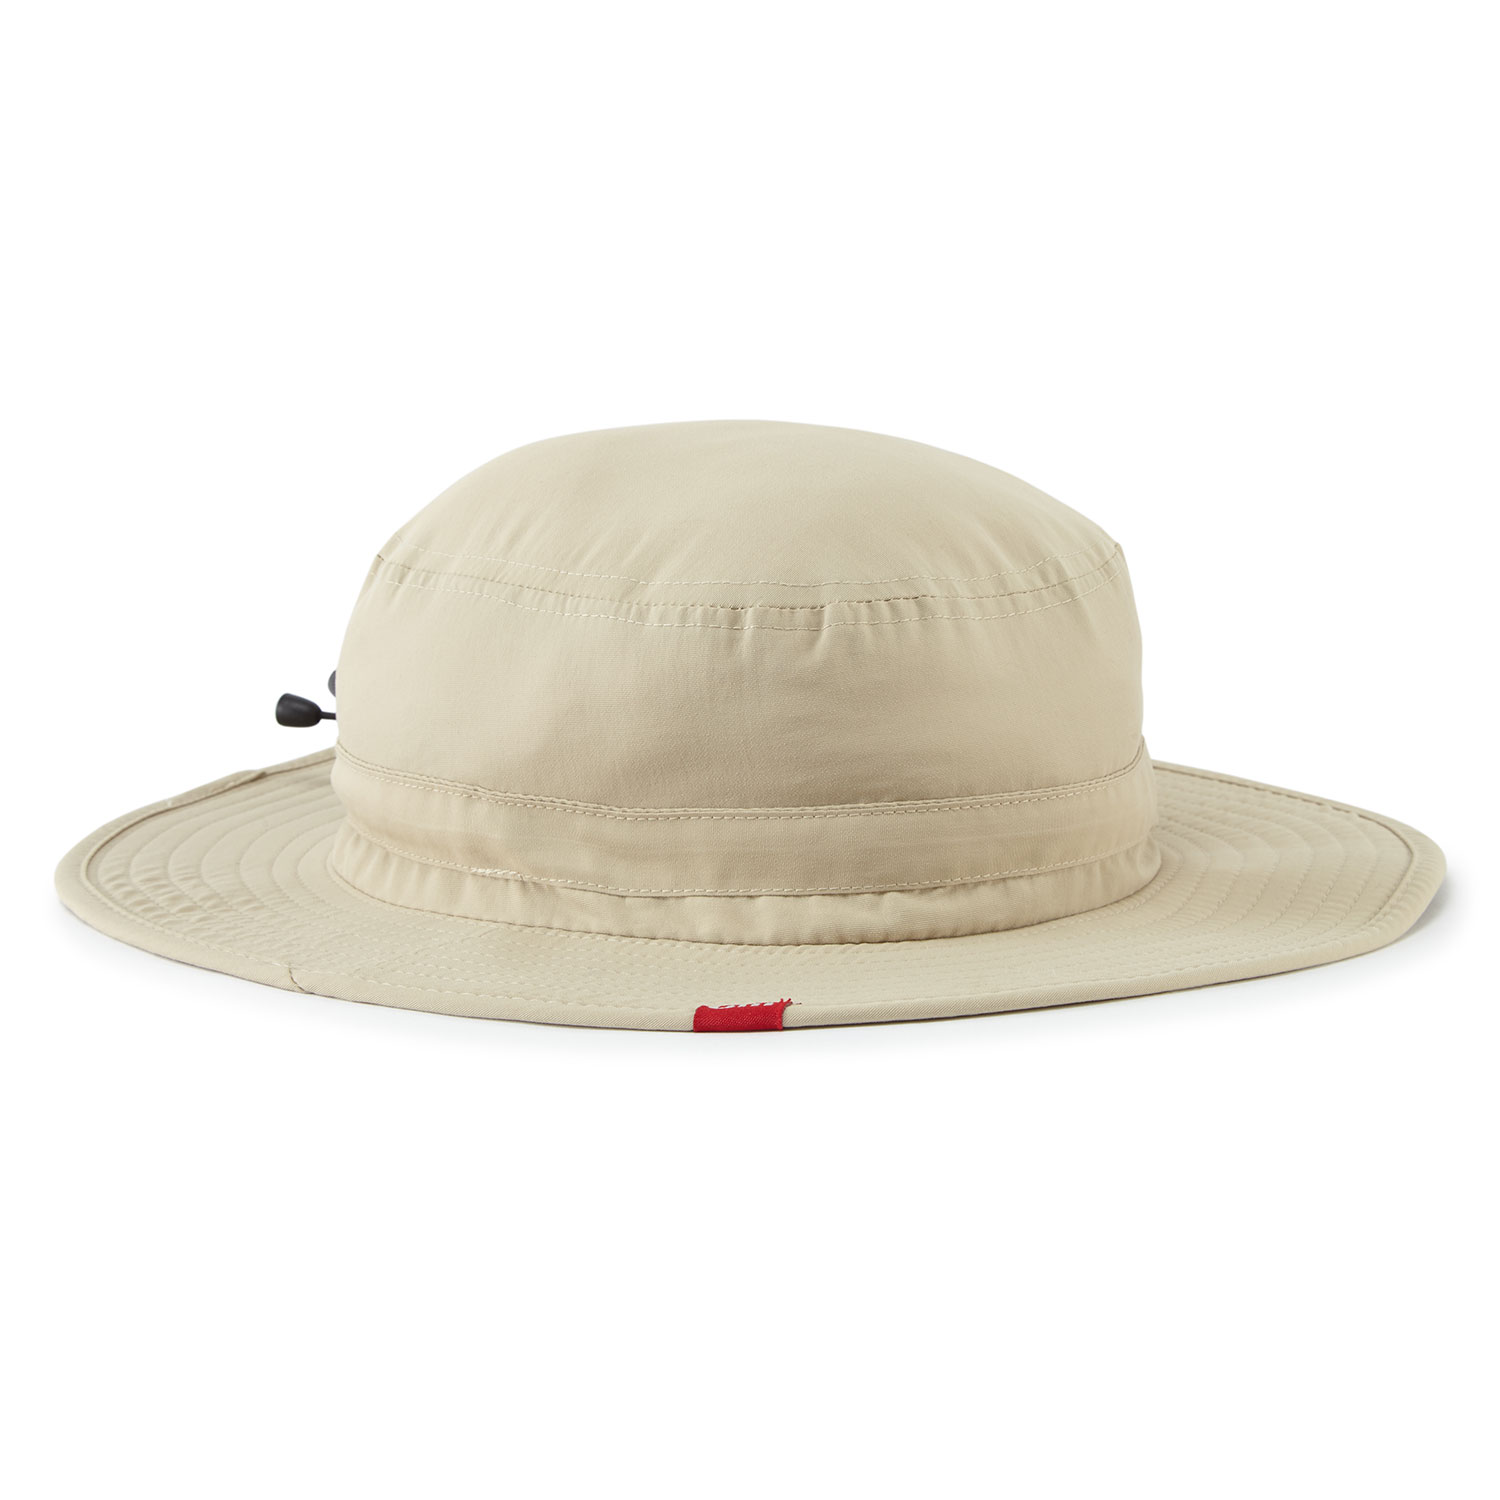 Details about Gill Technical Sailing Sun Hat - Khaki 4f3095bbfb9